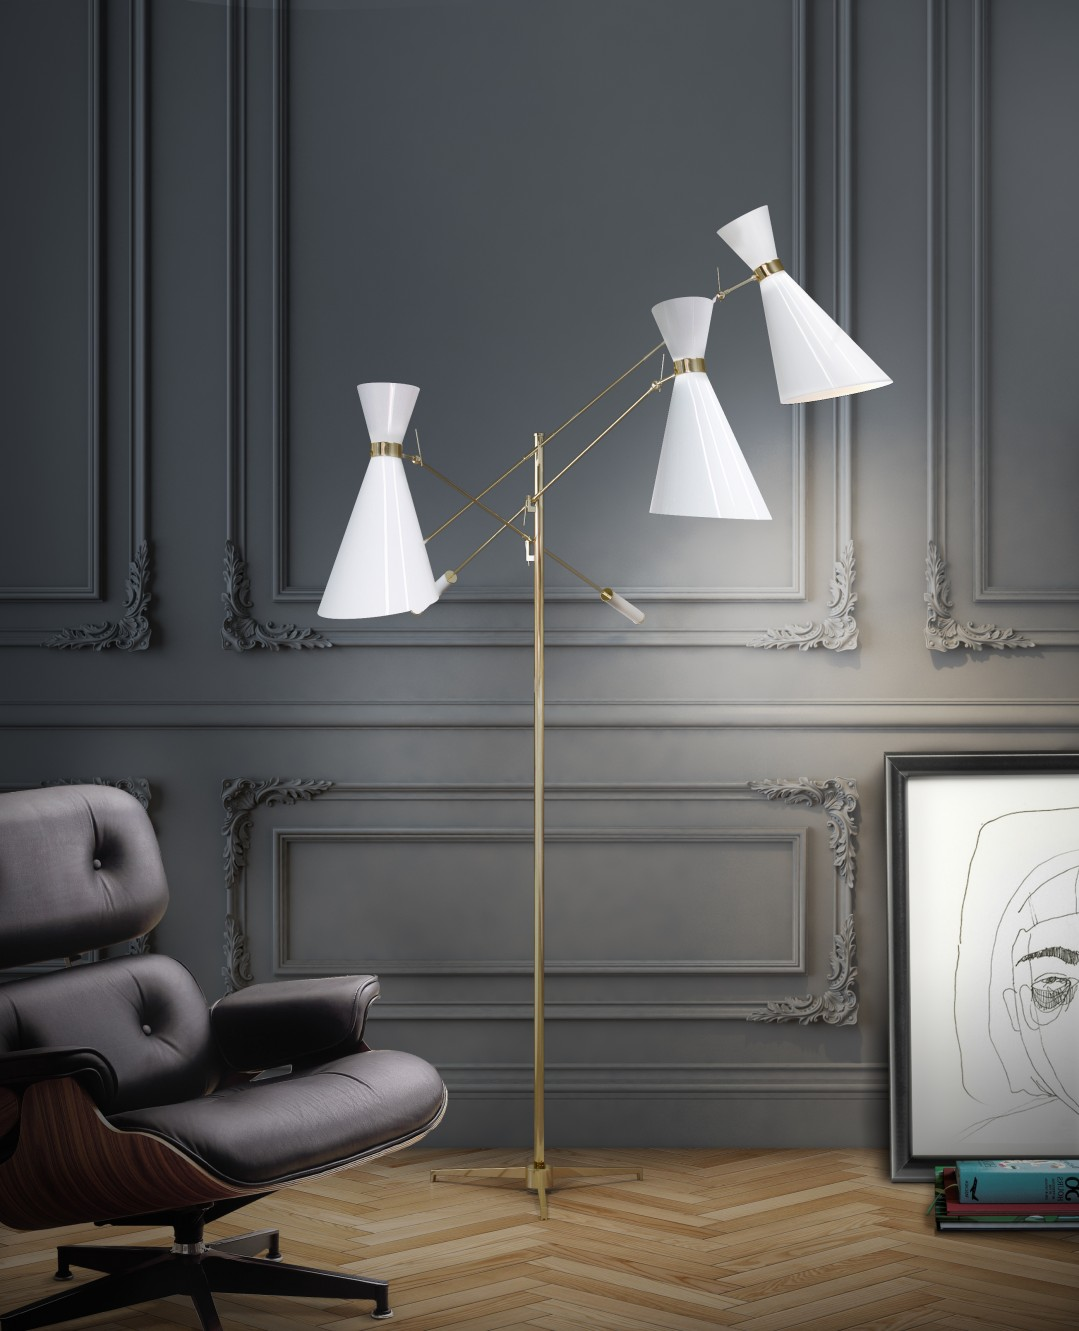 gold-plated floor lamps What's Hot On Pinterest Gold-Plated Floor Lamps! stanley floor ambience 04 HR1449a0ecd91b875280ed2b036e39755c